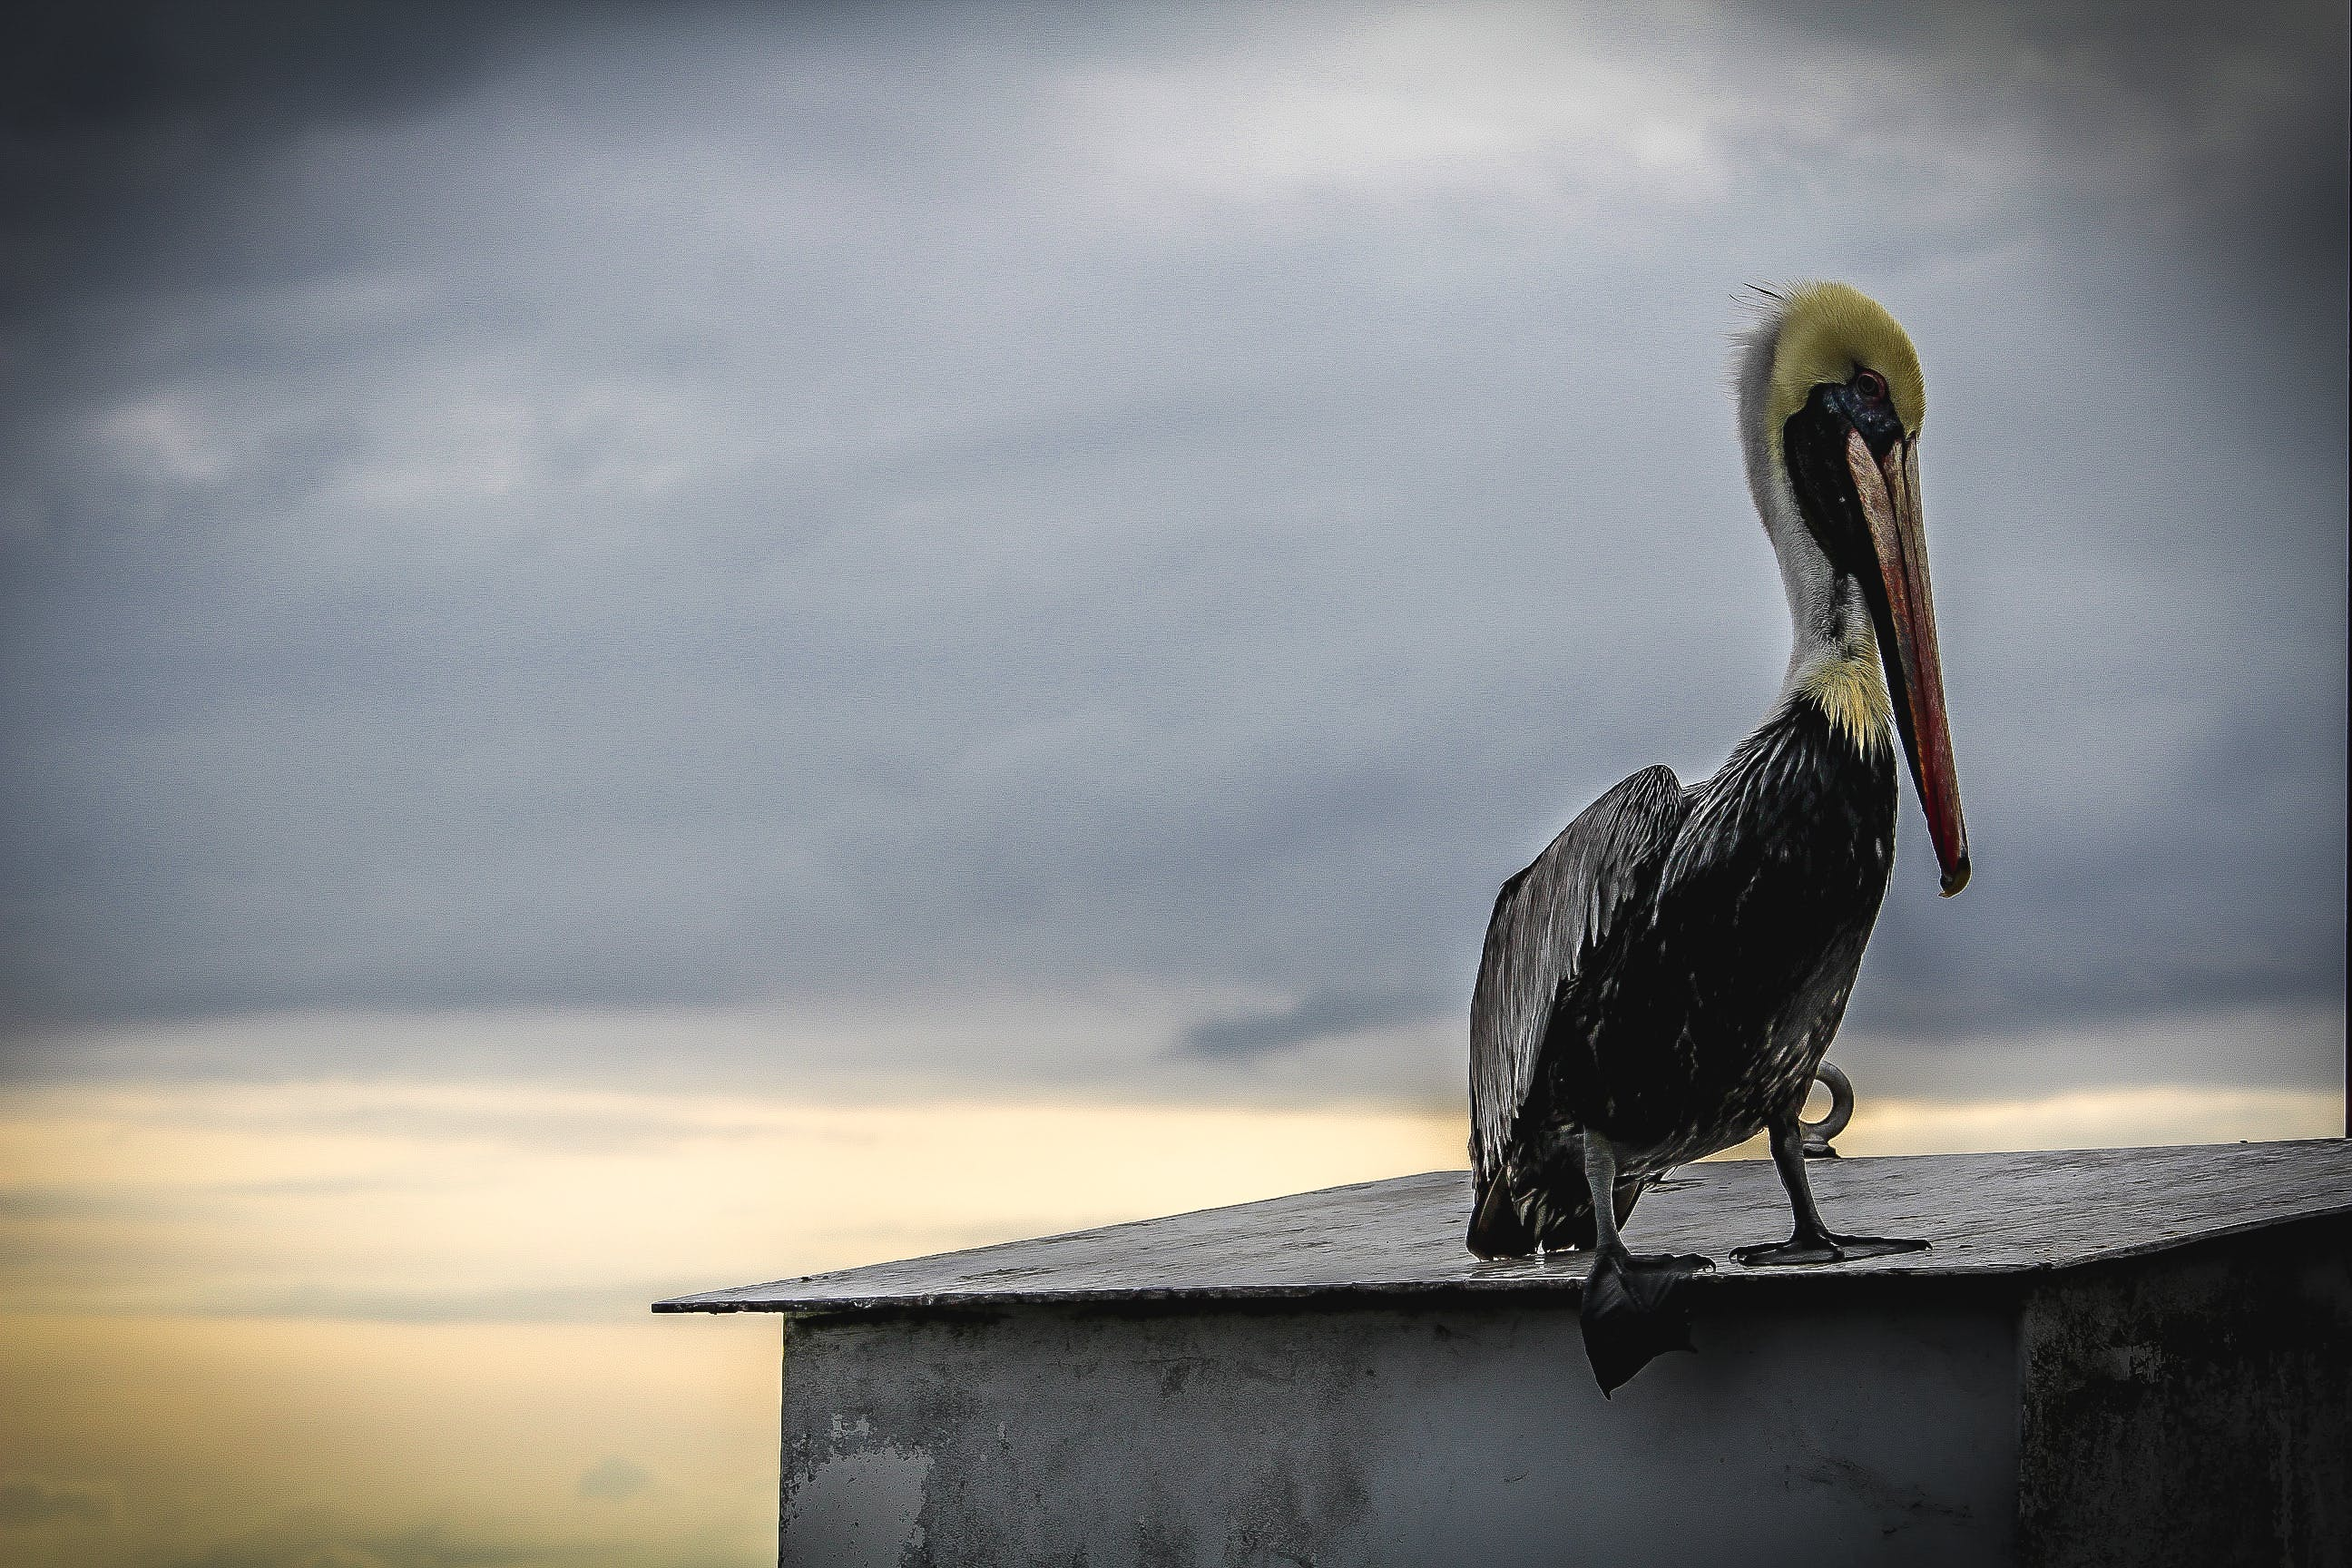 Black Pelican Photo